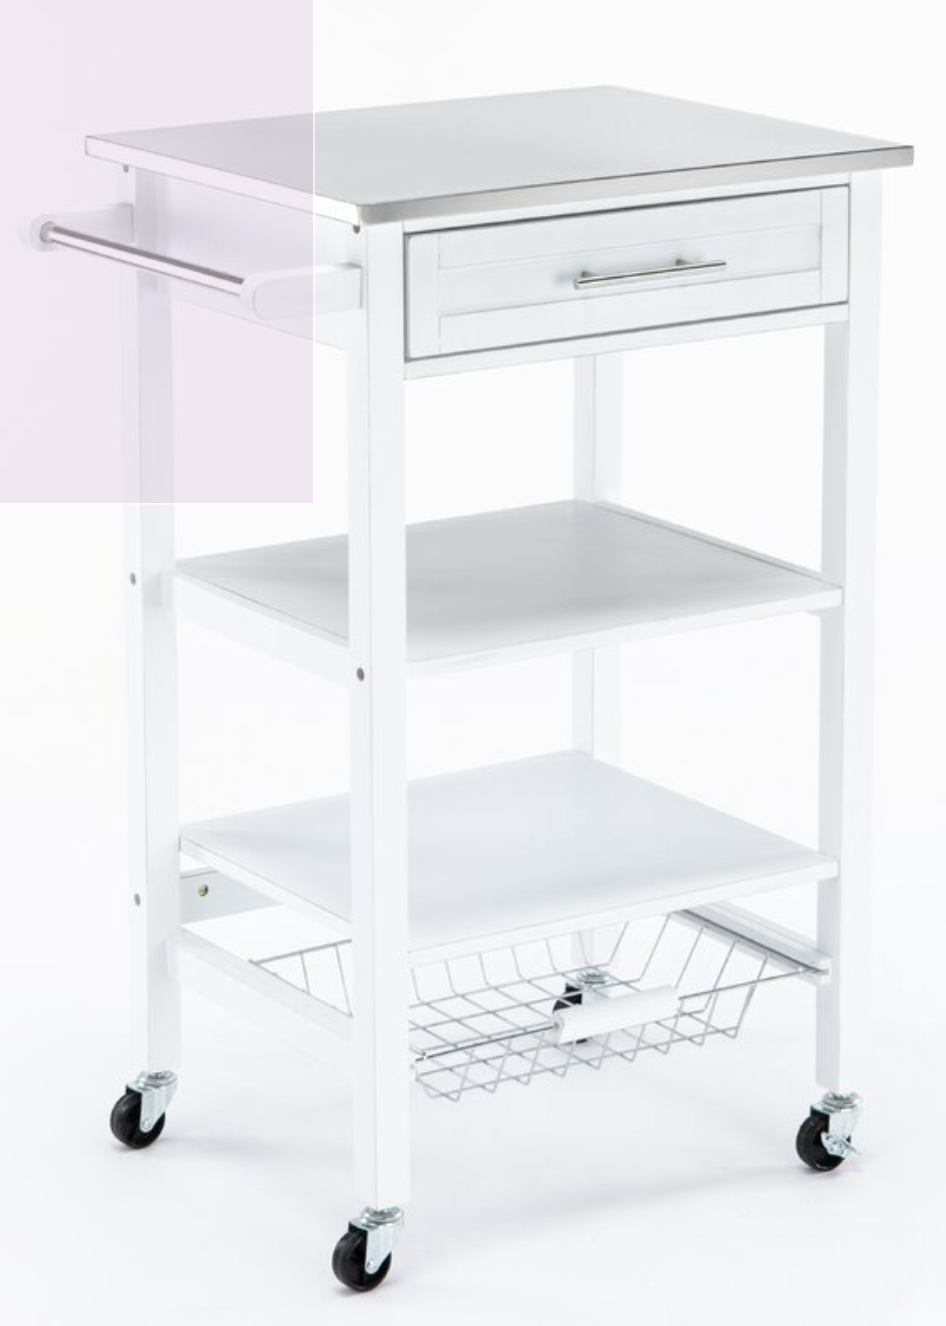 Brodnax Kitchen Cart With Stainless Steel Top In 2021 Kitchen Cart Rolling Kitchen Cart Cabinet Styles Stainless steel cart with drawer